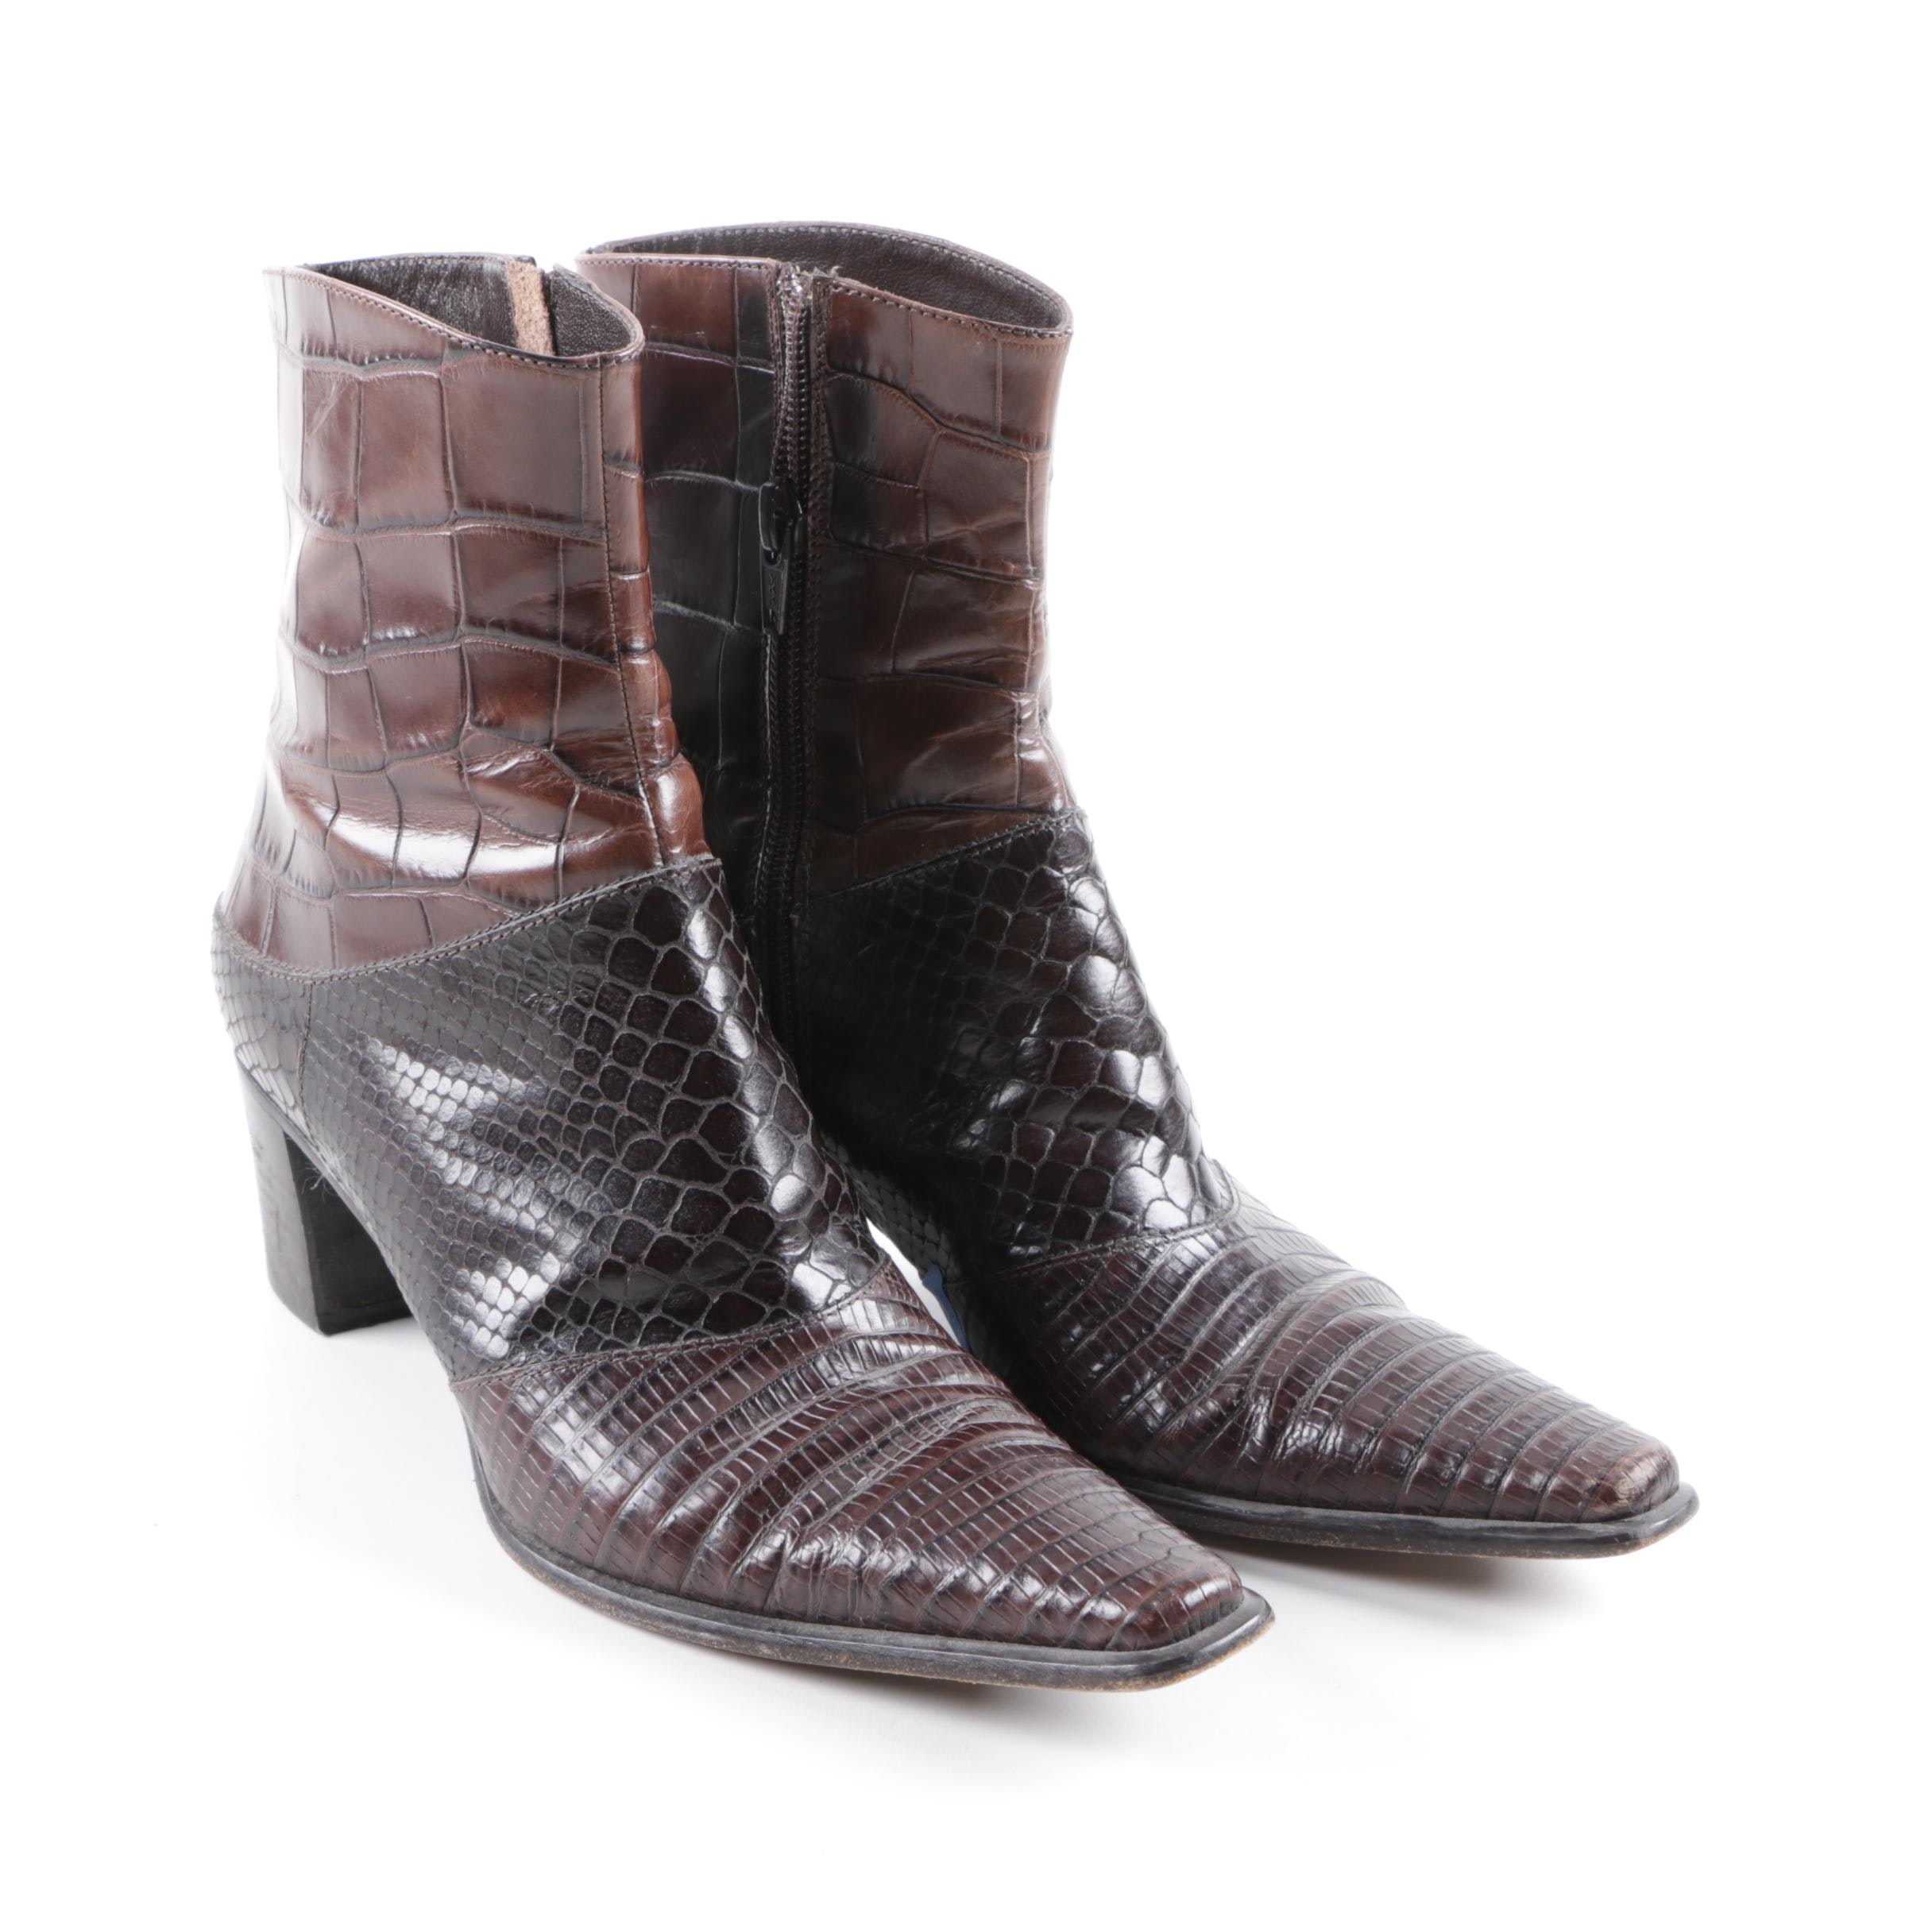 Via Spiga Embossed Leather Ankle Boots